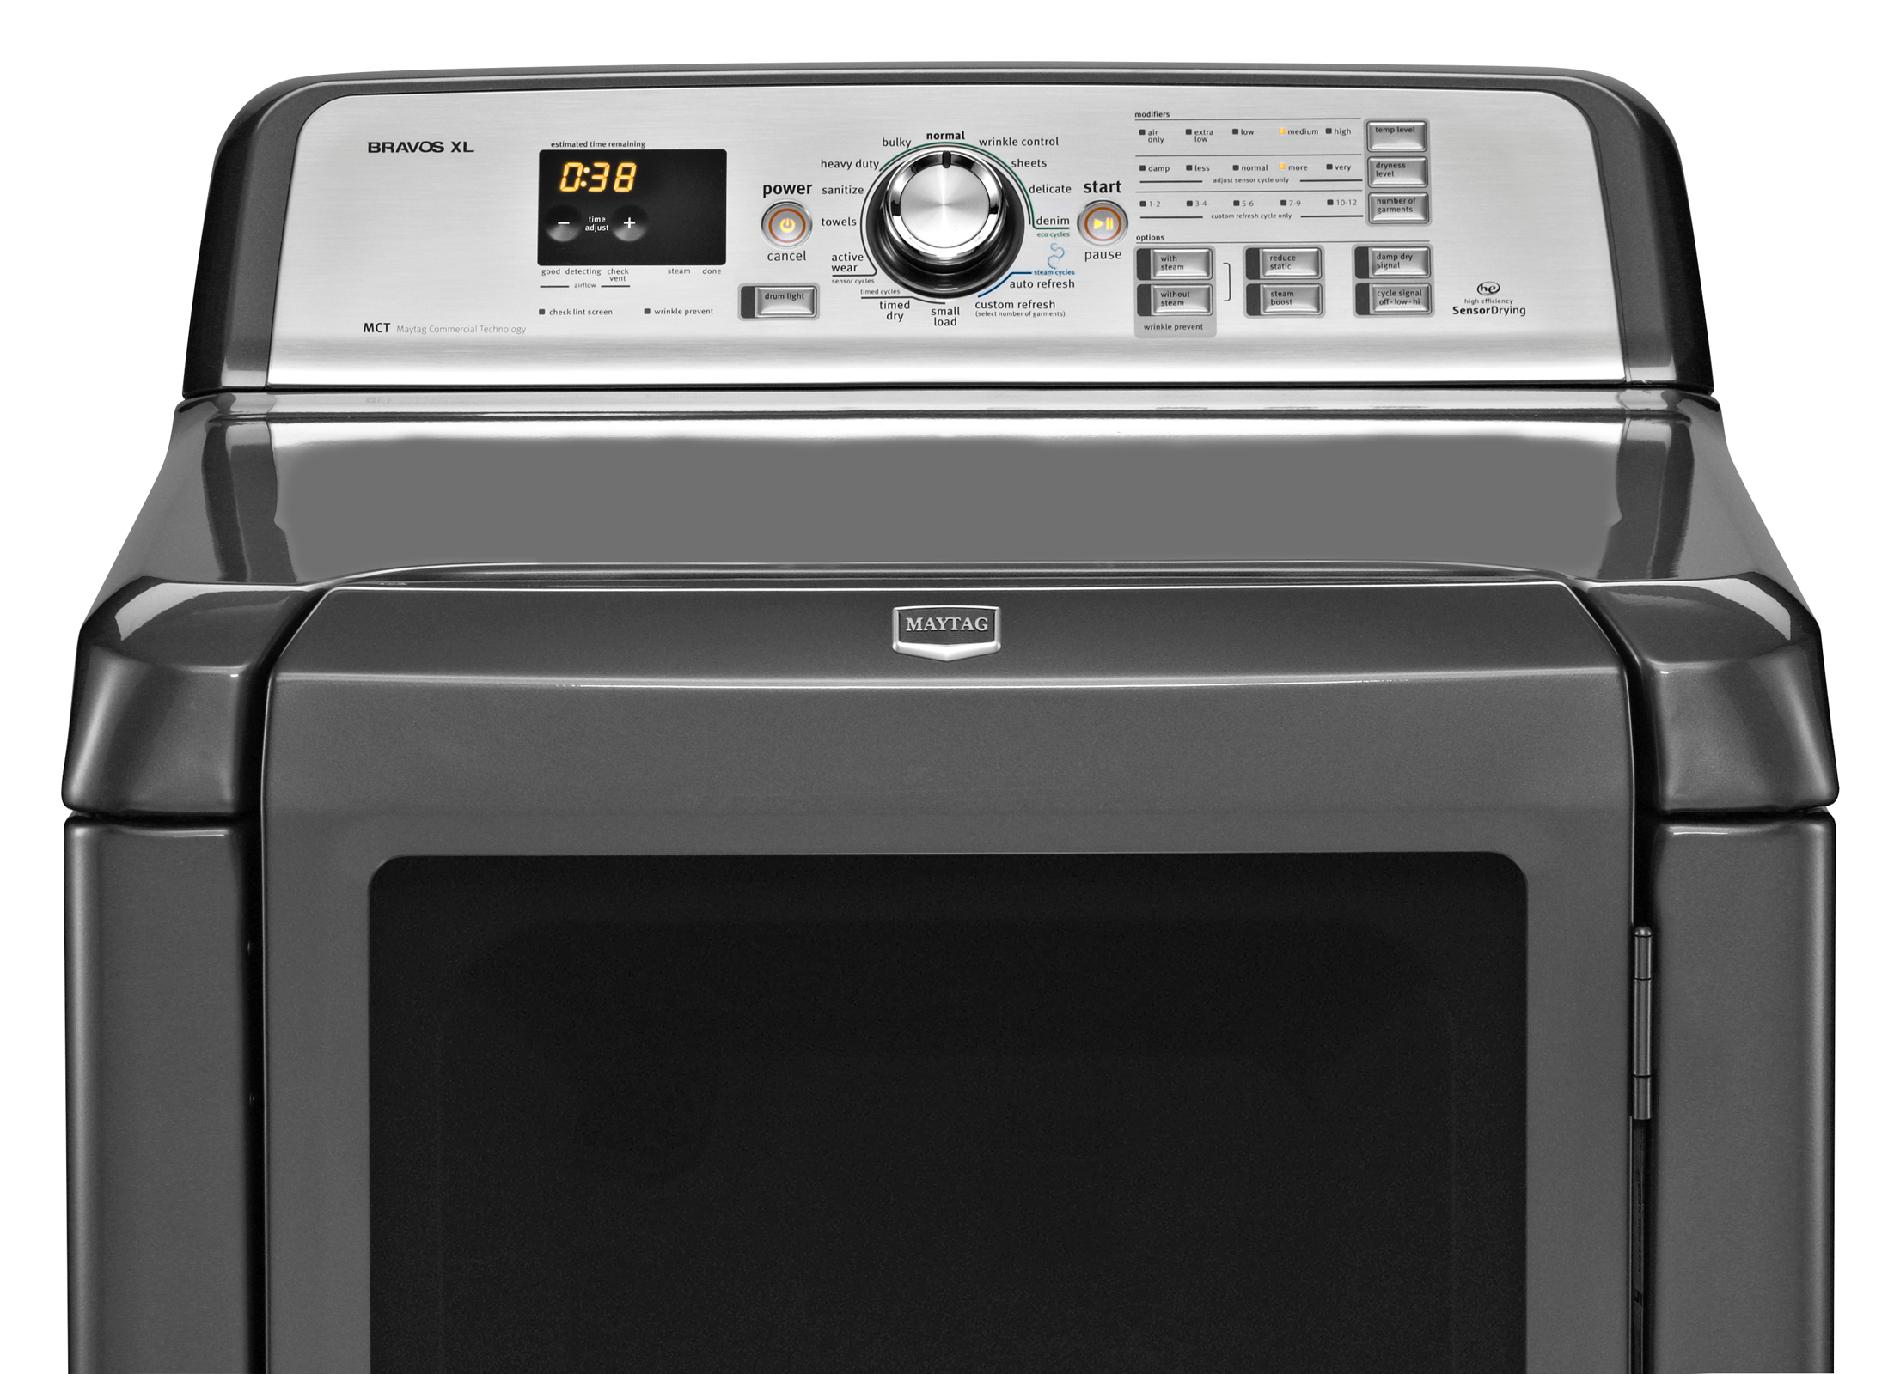 Maytag 7.3 cu. ft. Bravos XL® Electric Dryer w/ Custom Refresh Cycles - Granite